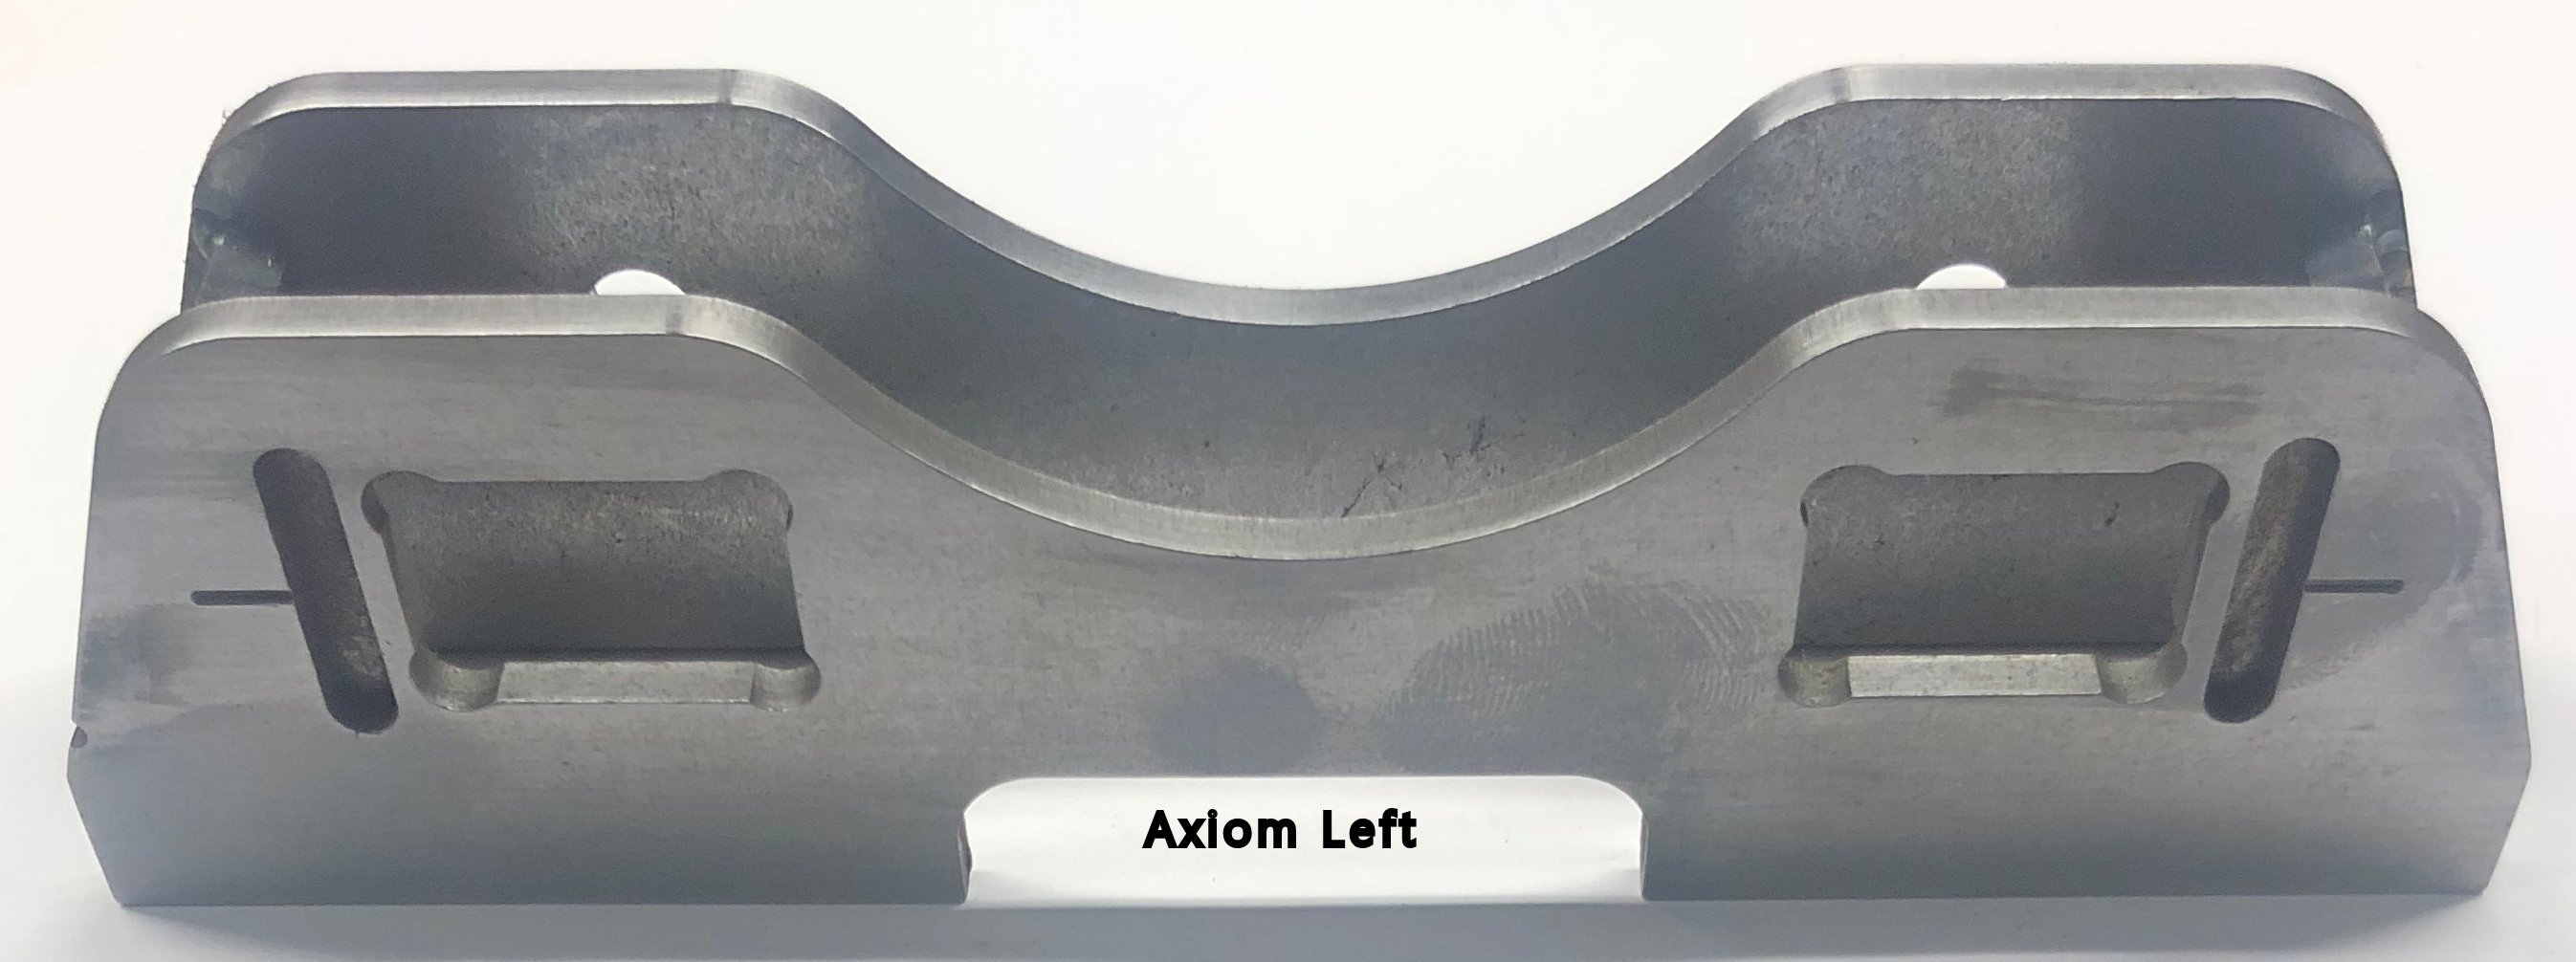 Axiom Left